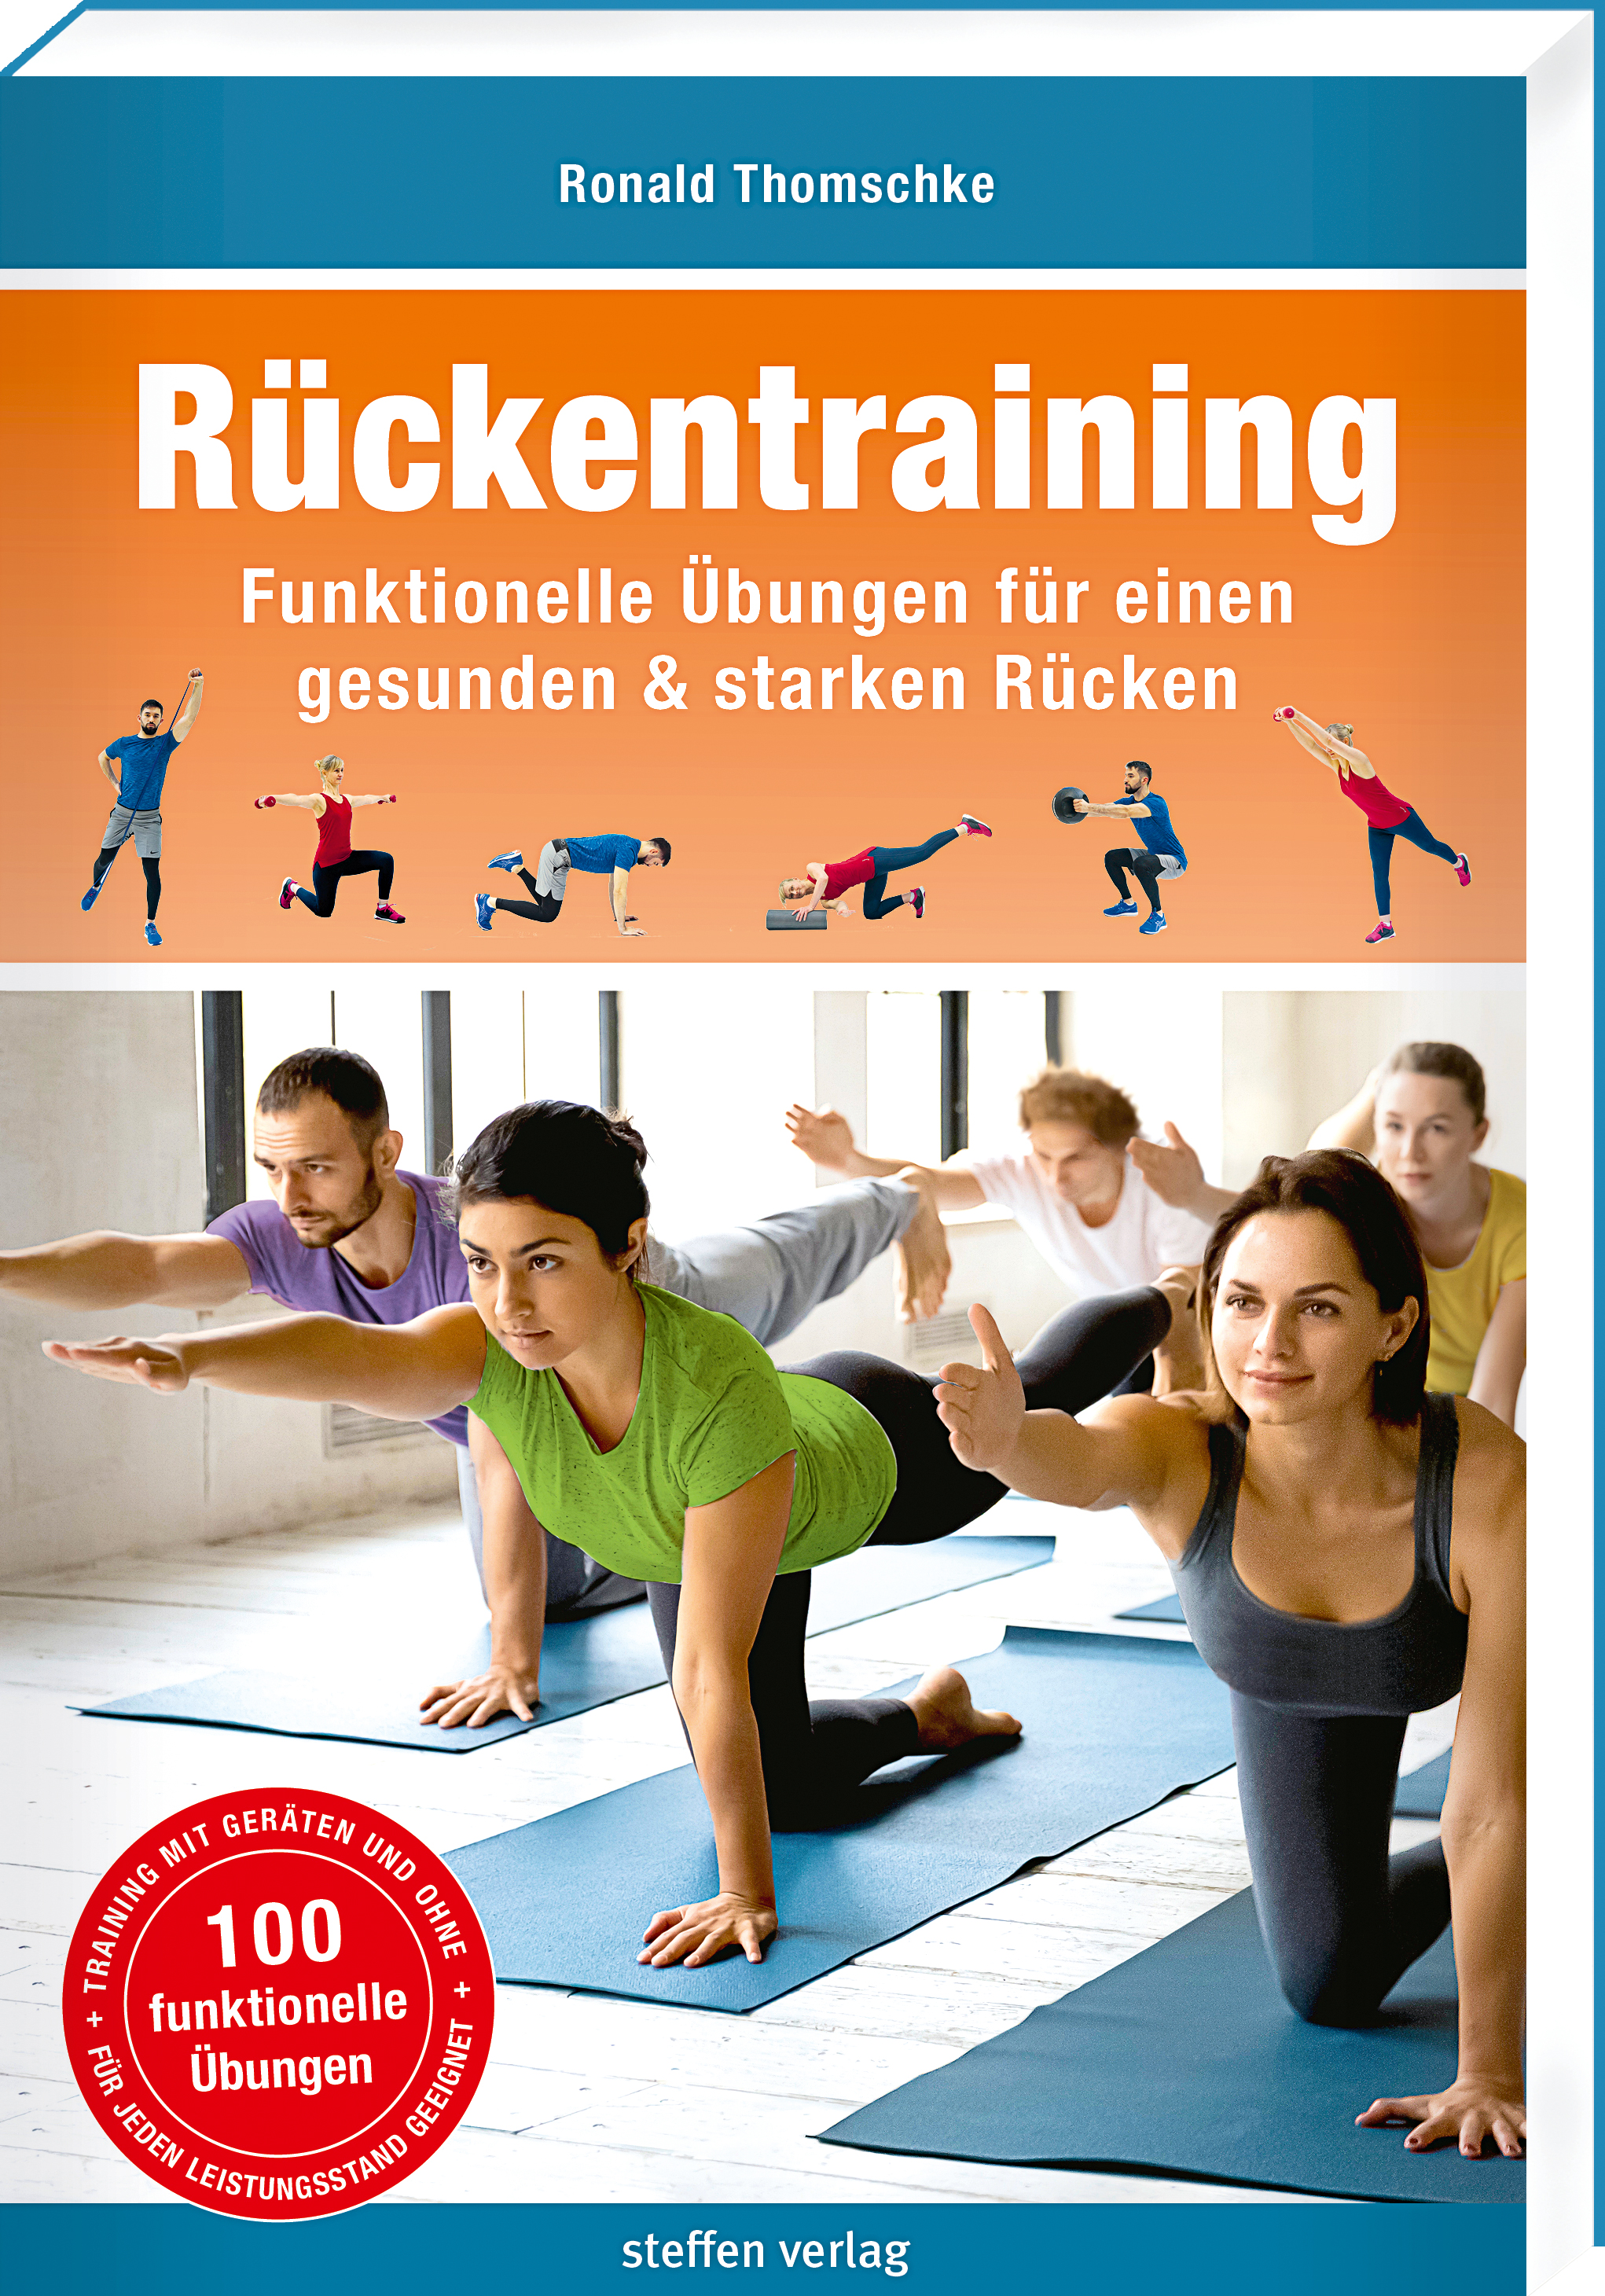 Thomschke_Ruckentraining_funktionell_3D